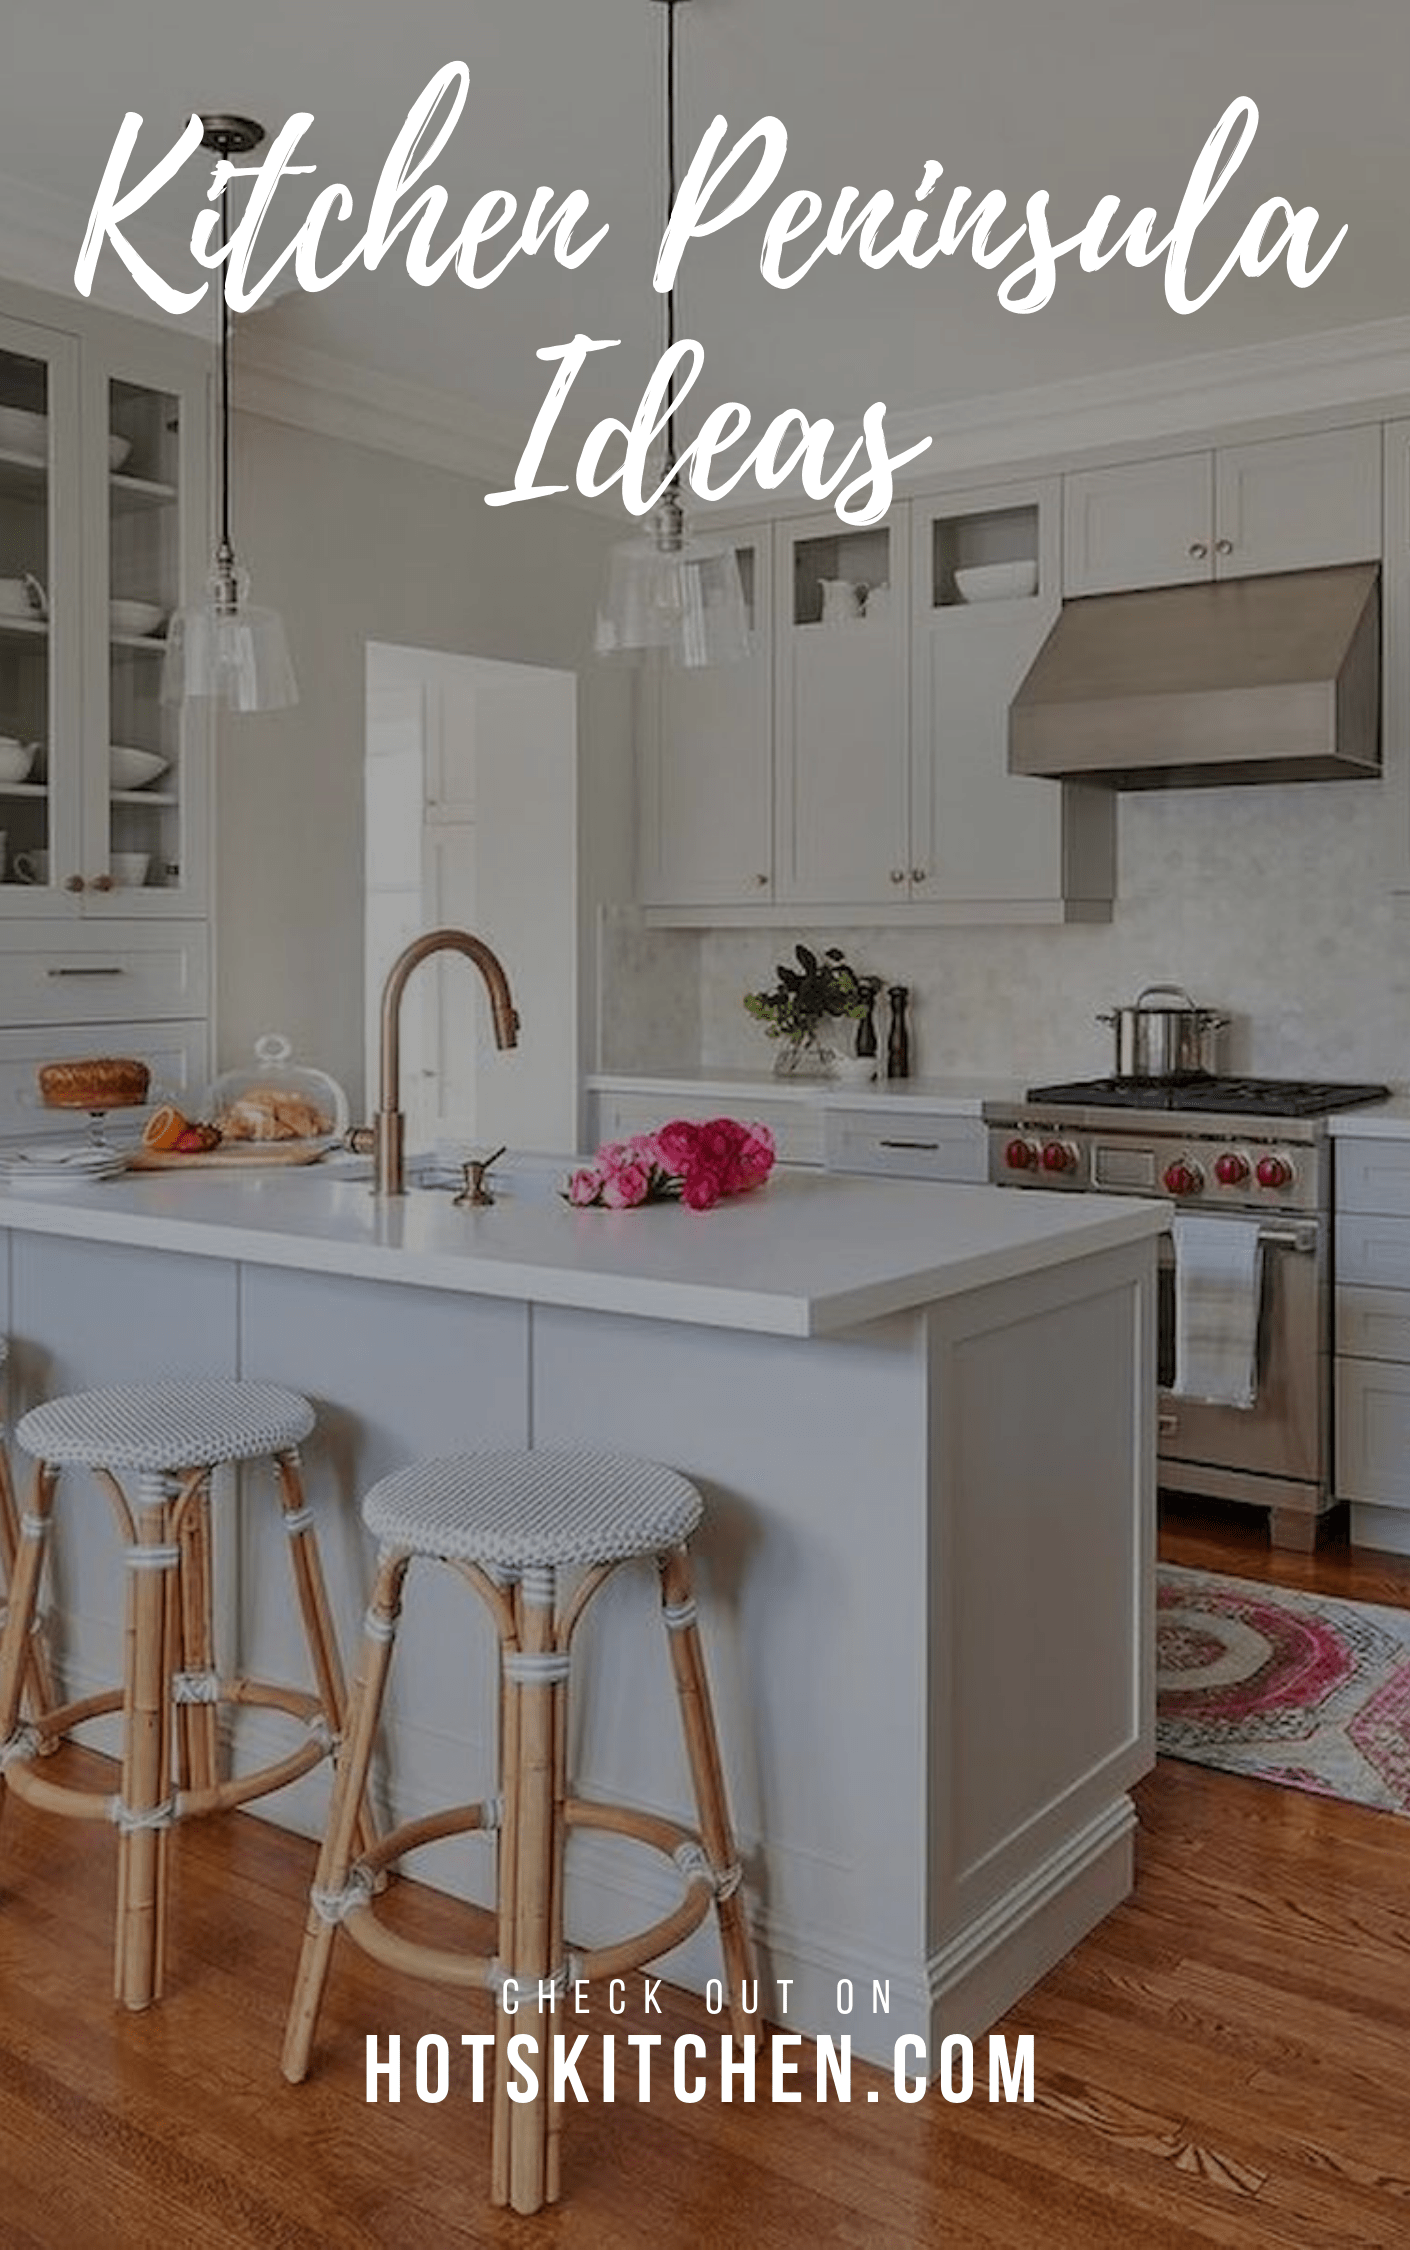 21 Kitchen Peninsula Ideas Basics Pros Cons Design Ideas Must Have Kitchen,Church Pulpit Designs